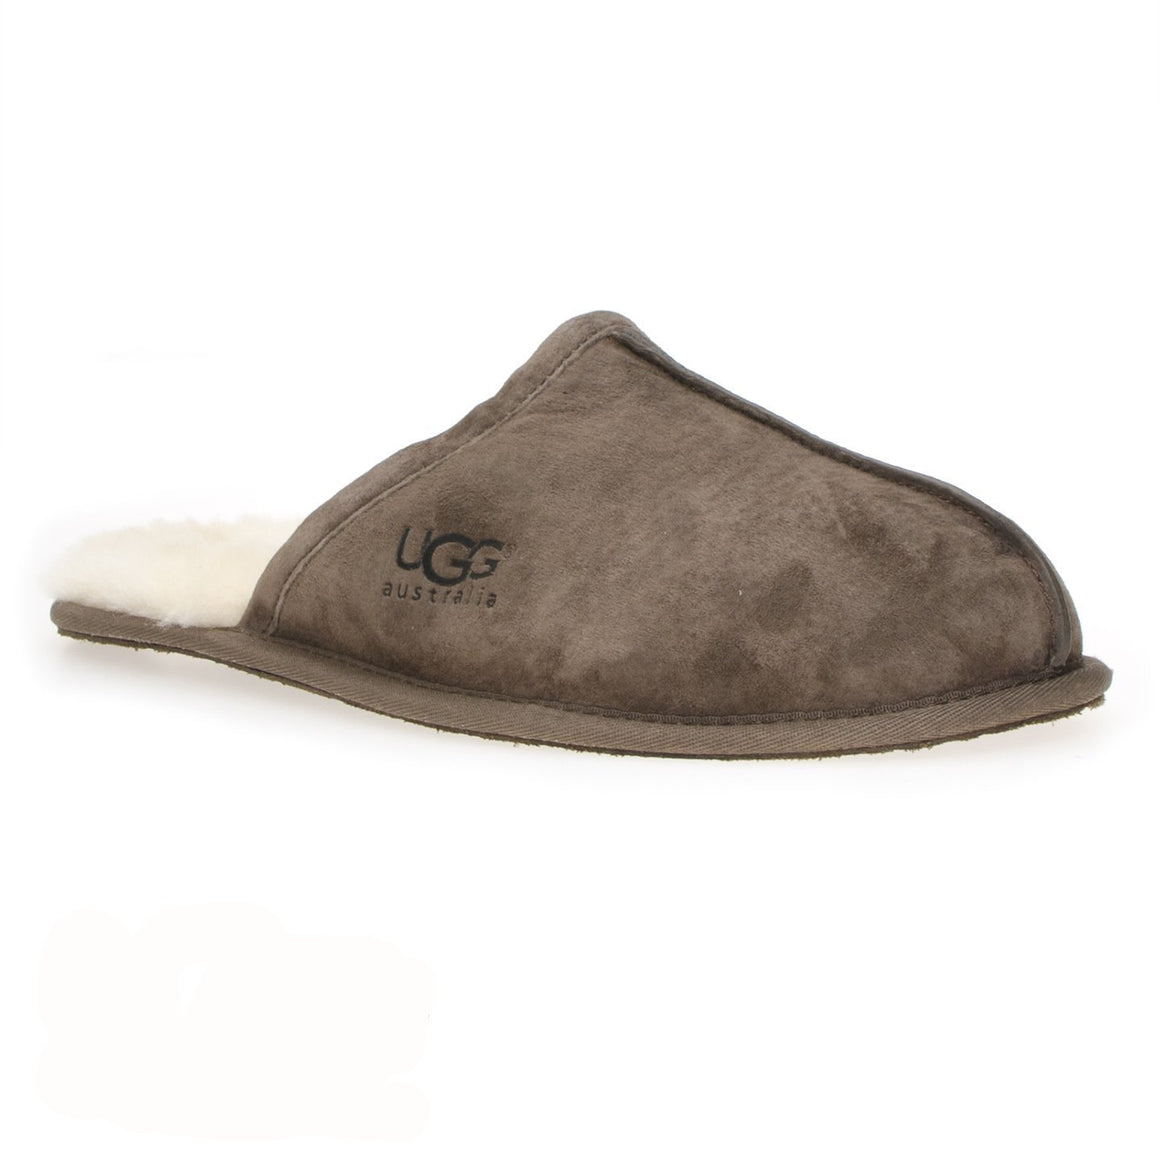 UGG Scuff Espresso Slippers - Men's